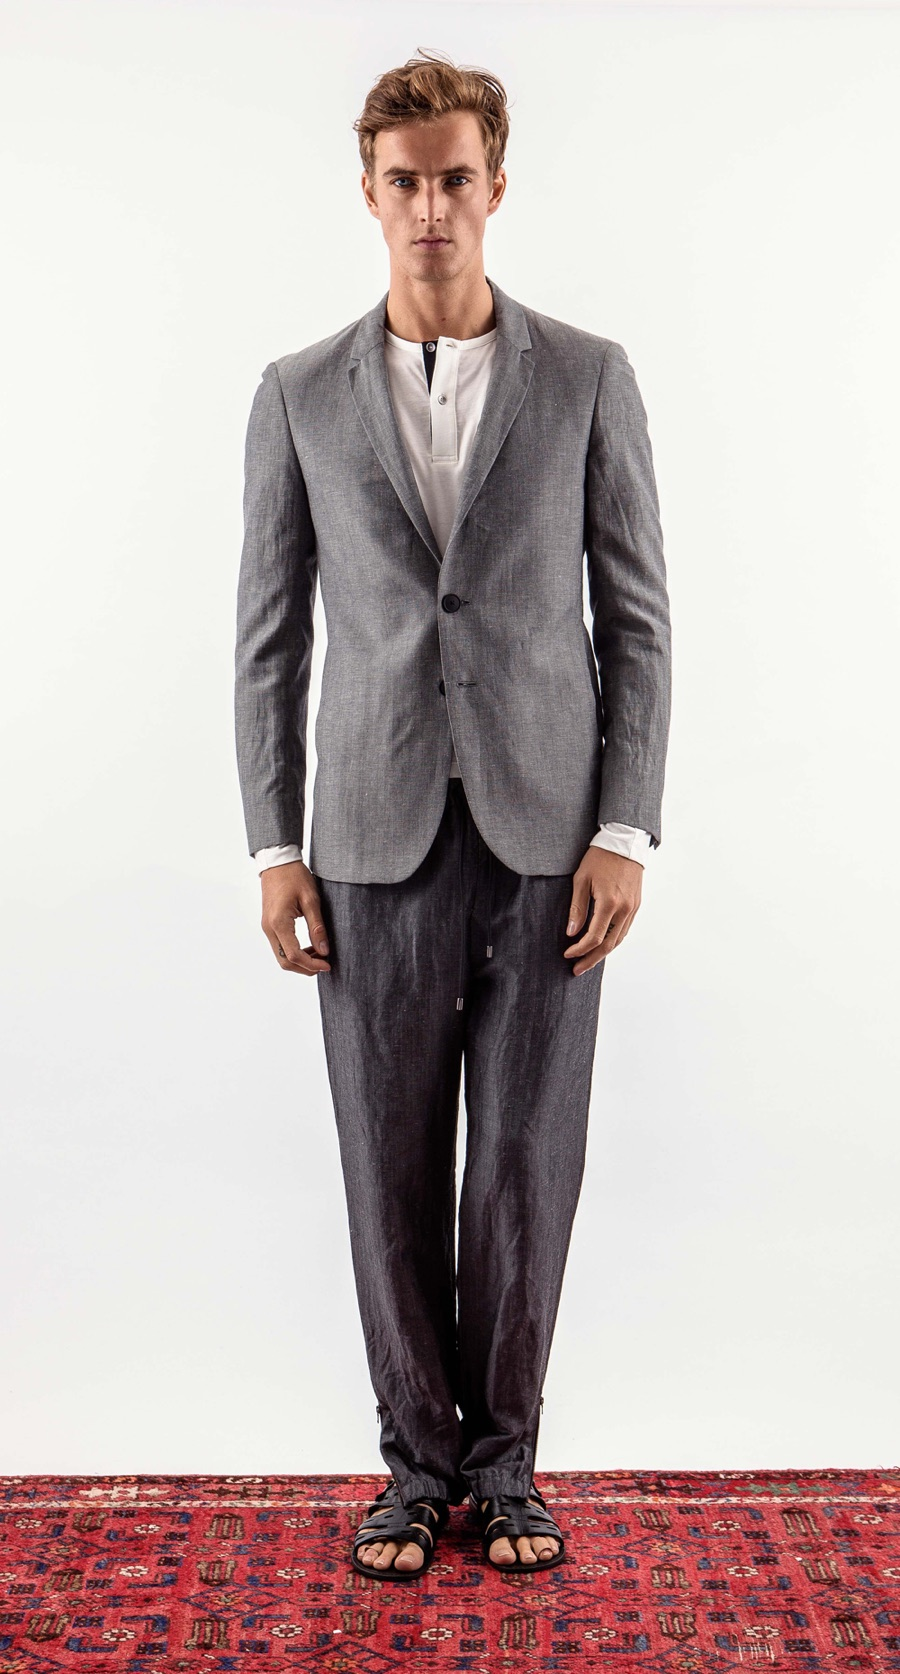 Bespoken Unveils Smart Mix of Casual + Tailored Styles for Spring